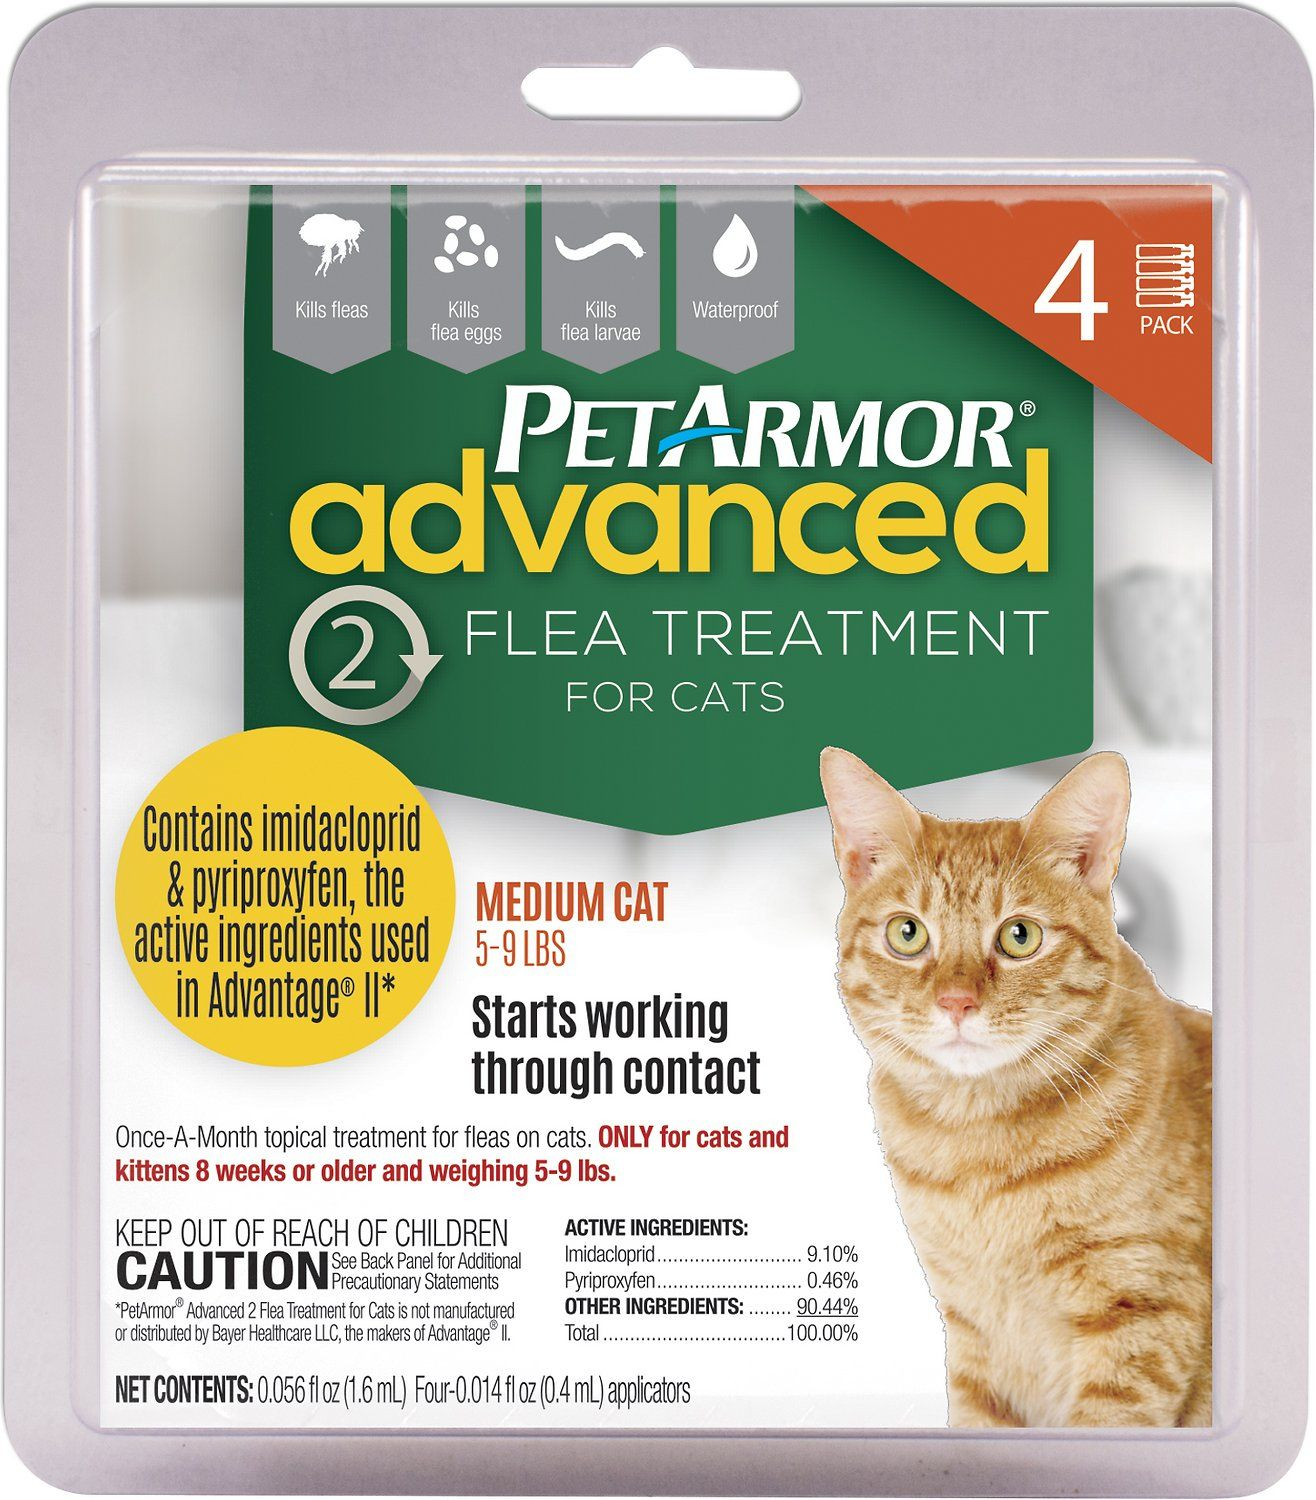 PetArmor Advanced 2 Flea Treatment for Medium Cats 5 9 lbs 4